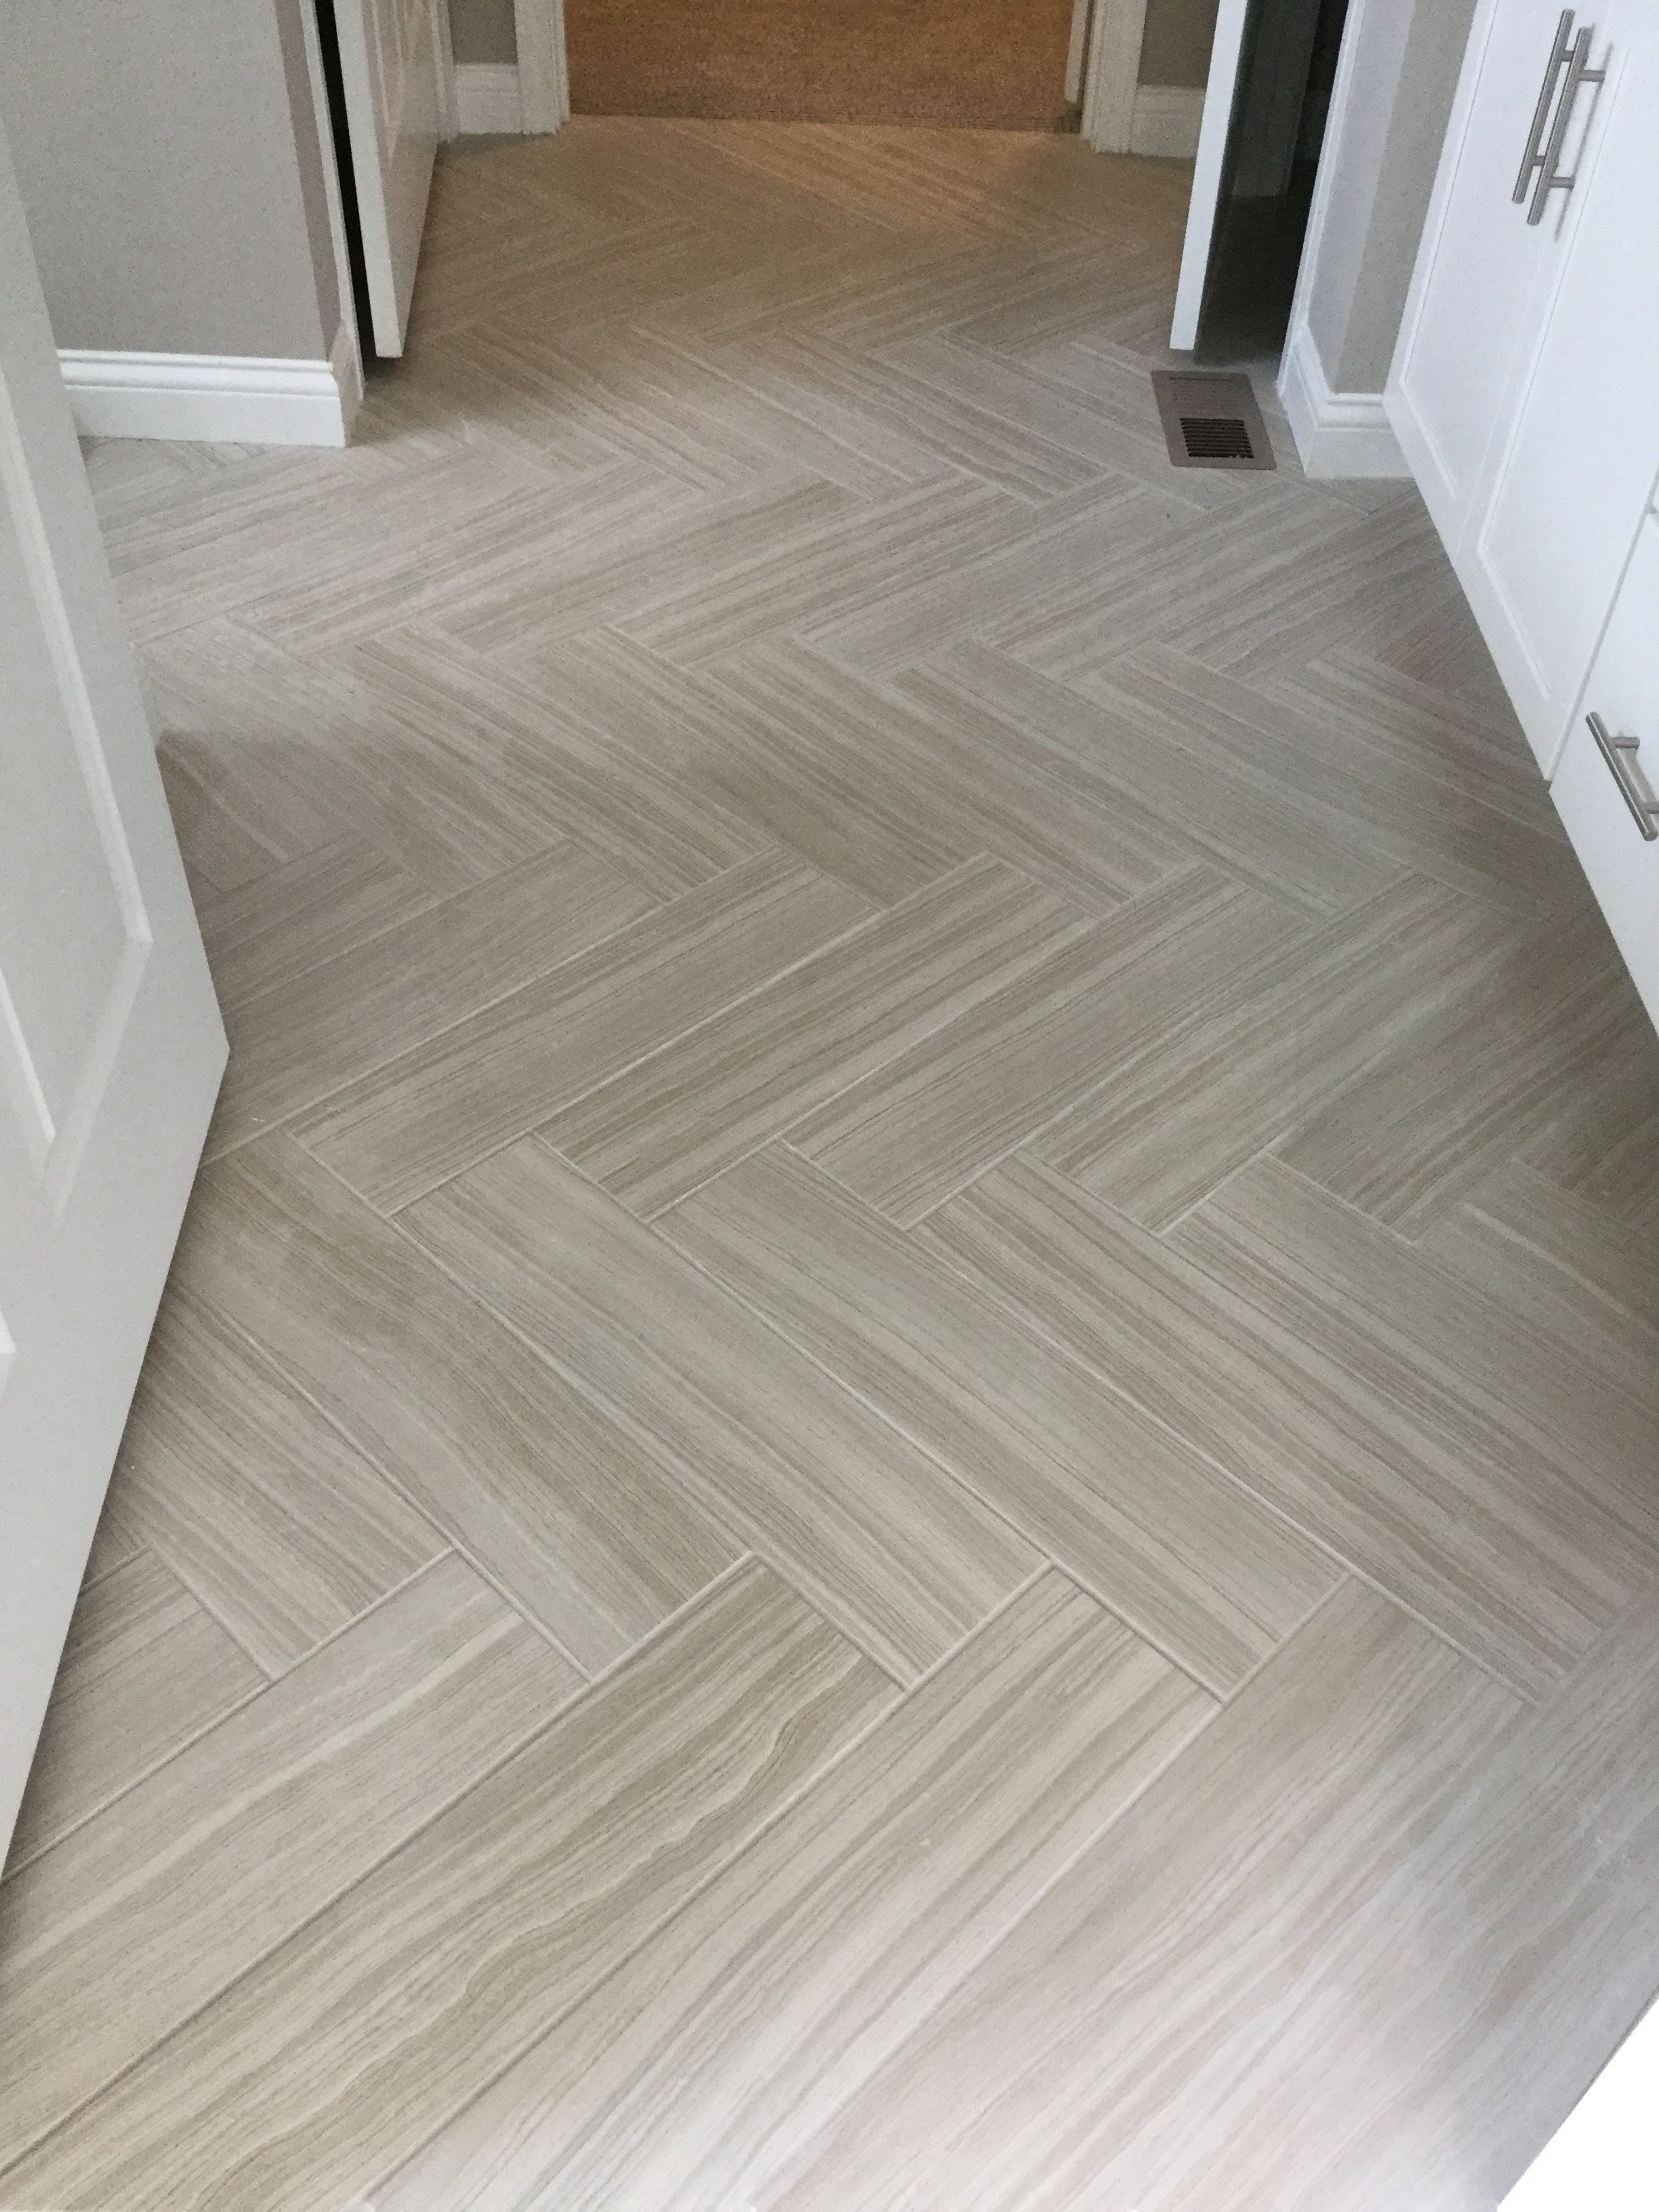 Santino Bianco 6x24 Tiles In Herringbone Pattern On Floor Of Bathroom Herringbone Tile Floors Tile Floor Patterned Floor Tiles